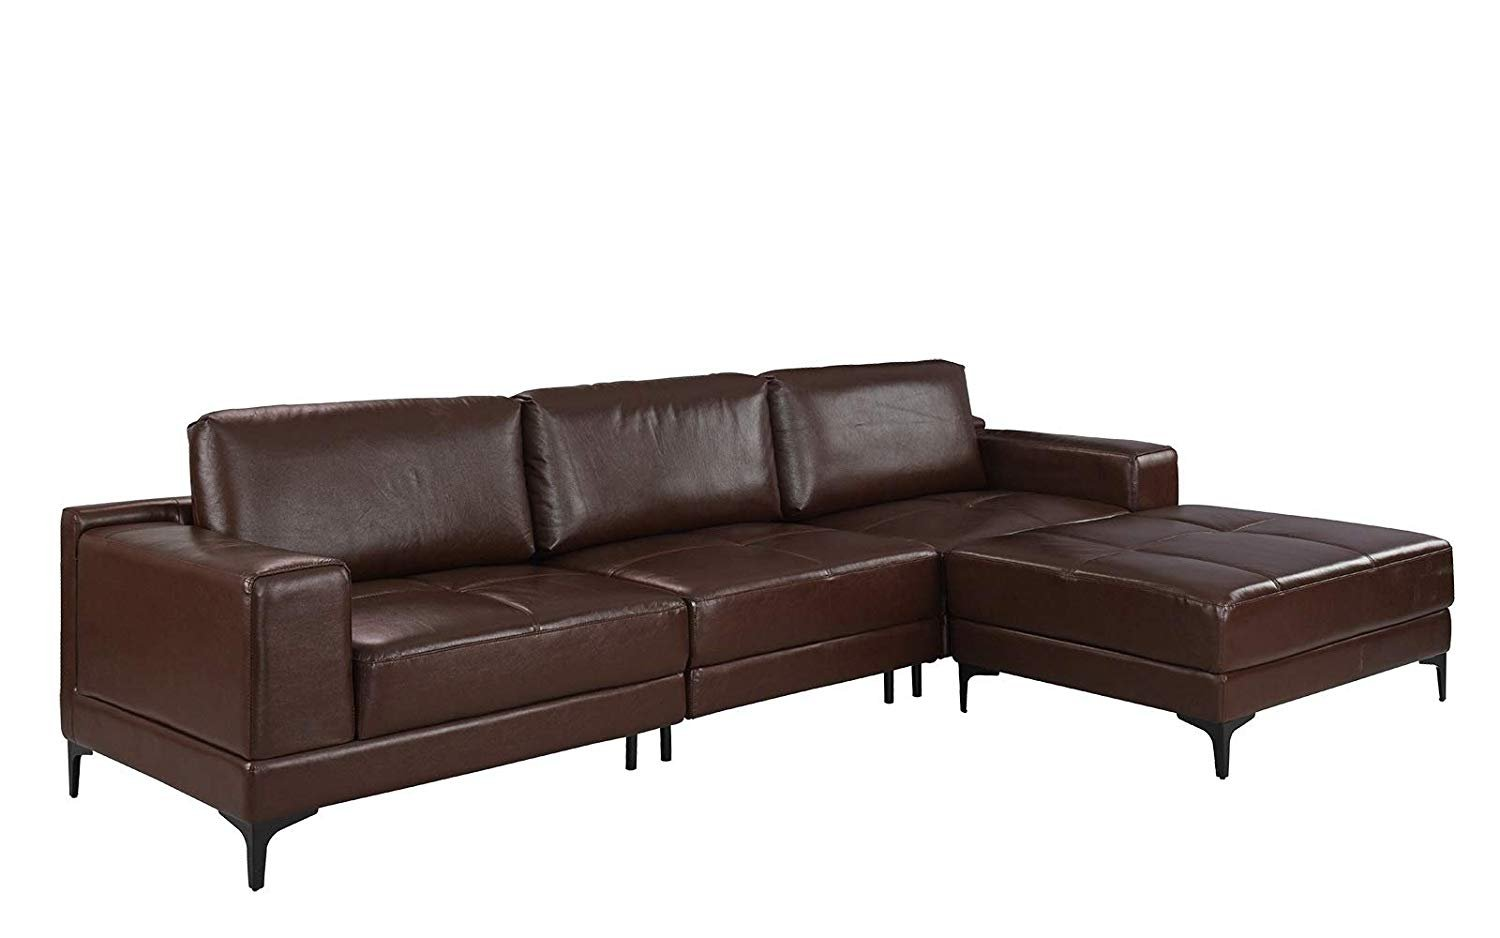 Swell Details About Modern 114 9 Inch Leather Sectional Sofa Living Room Reversible Couch Brown Bralicious Painted Fabric Chair Ideas Braliciousco